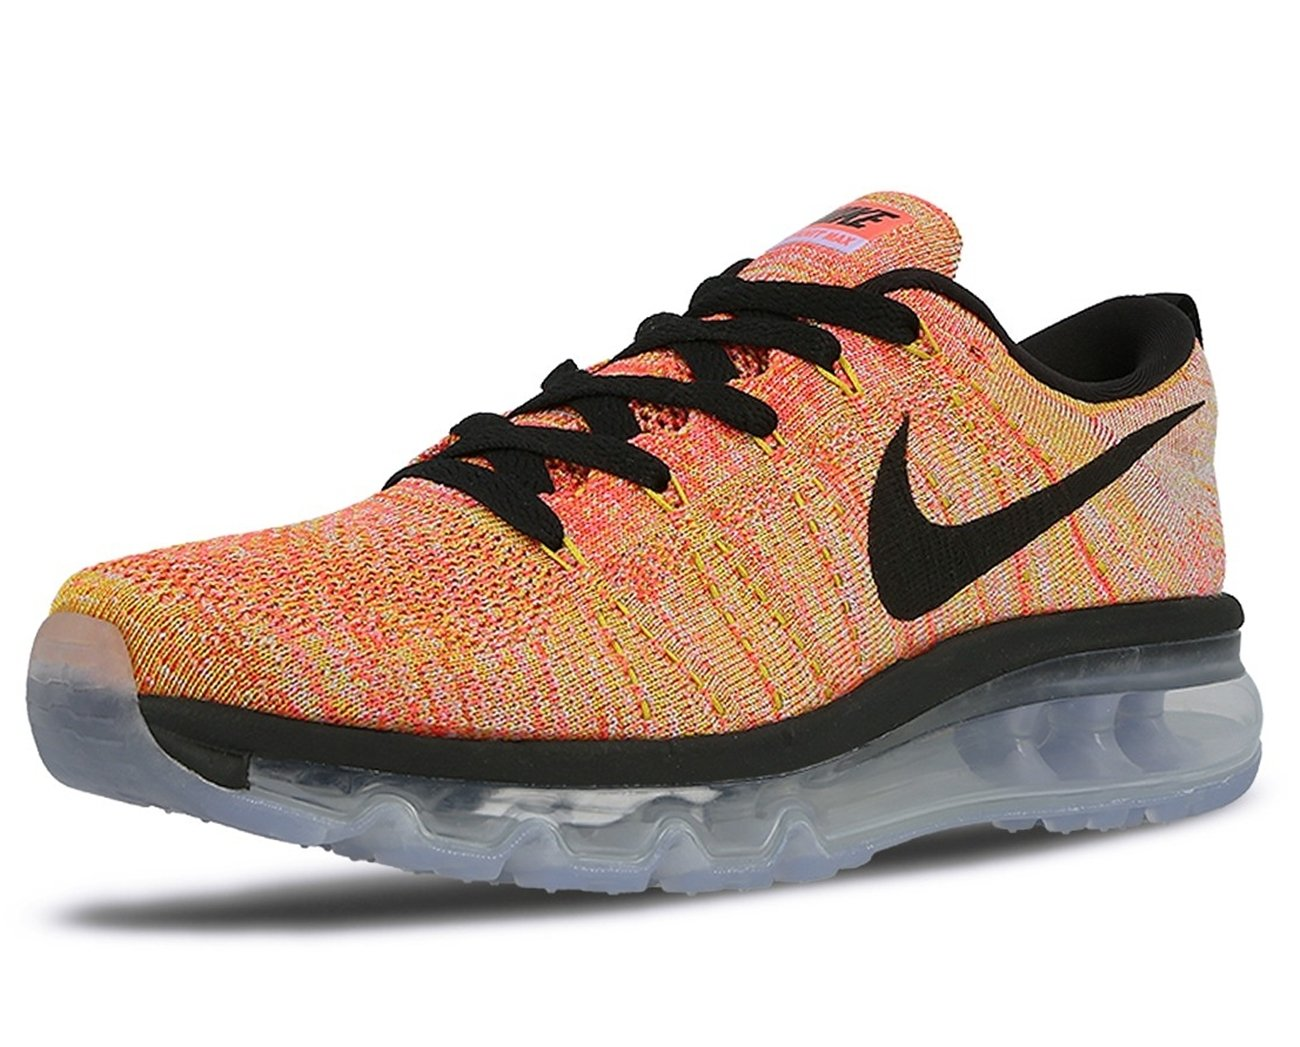 Nike Black Running Shoes 620659 008 Nike Flyknit Air Max